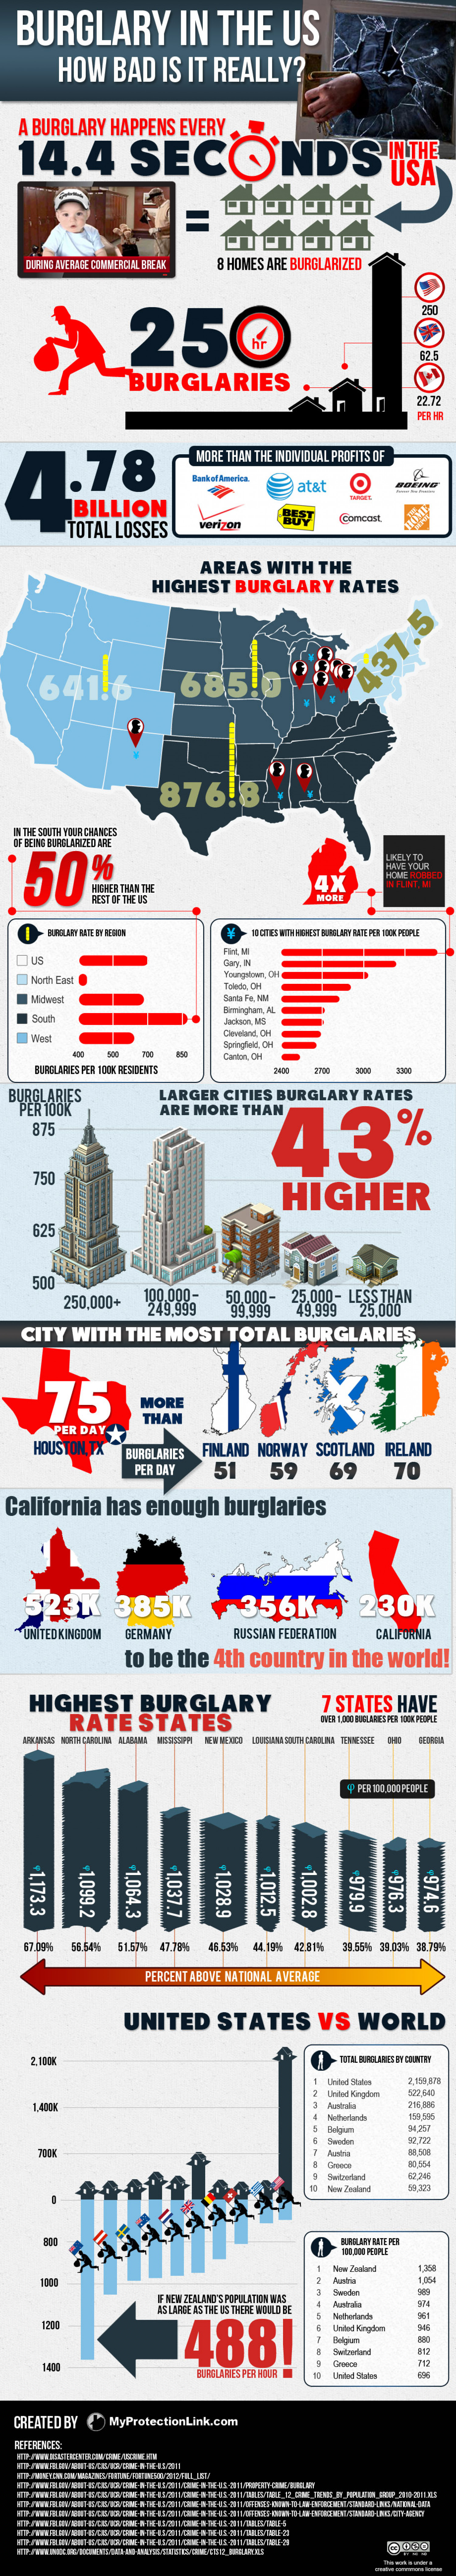 How Bad is Burglary in the US? Infographic